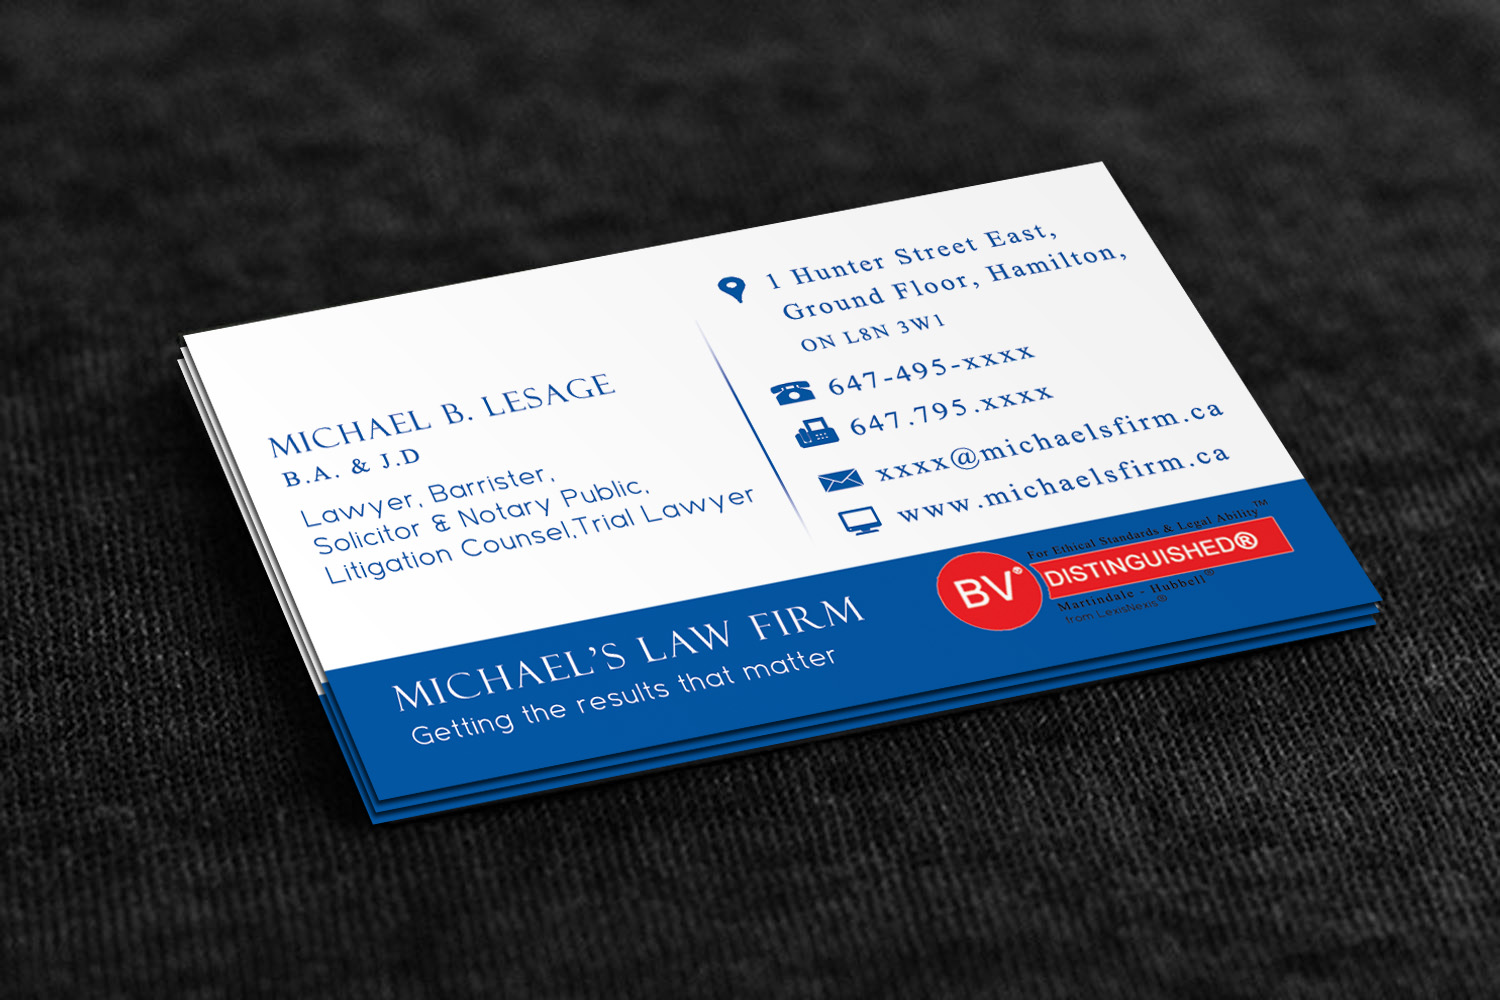 Elegant playful business business card design for michaels law business card design by stream graphics for michaels law firm design reheart Gallery